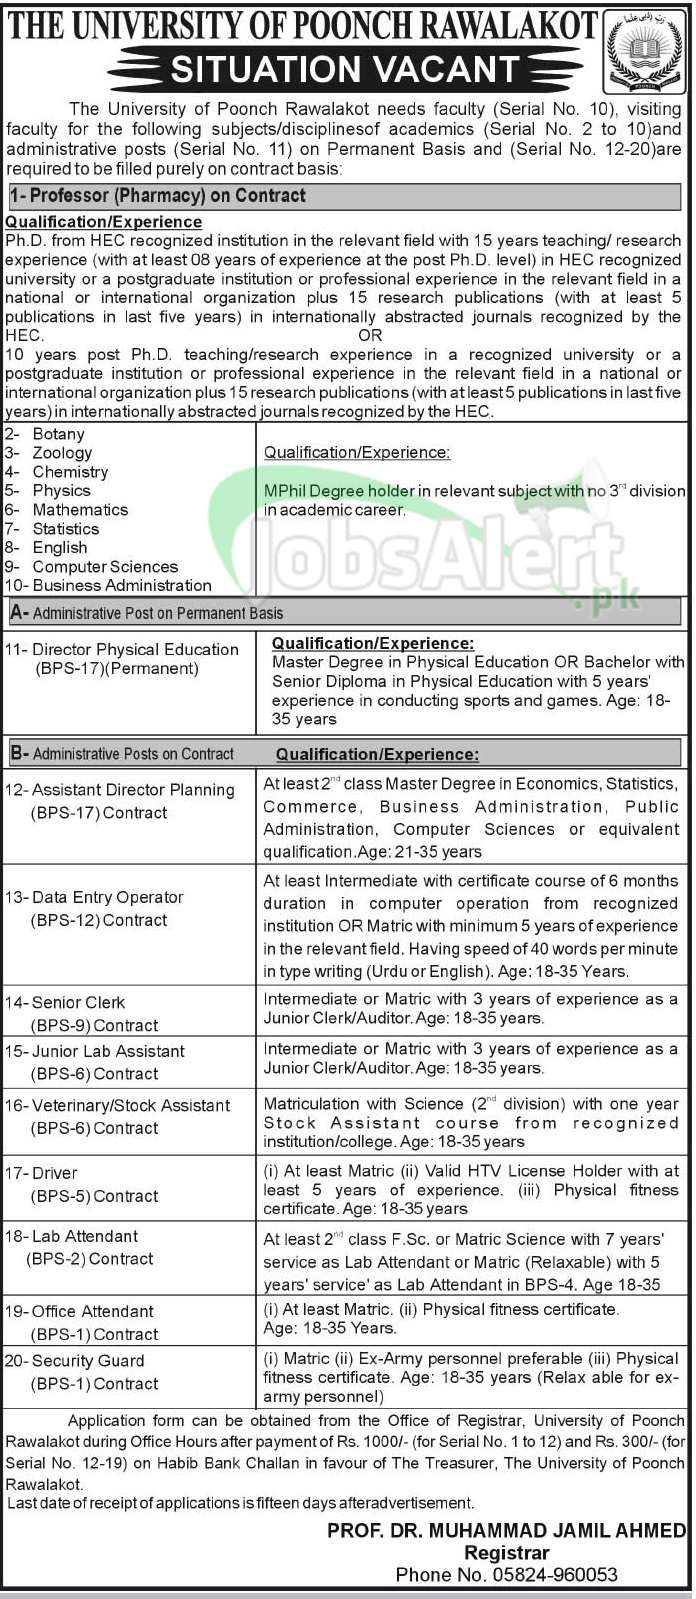 Professor & Assistant Jobs in The University of Poonch Rawalakot